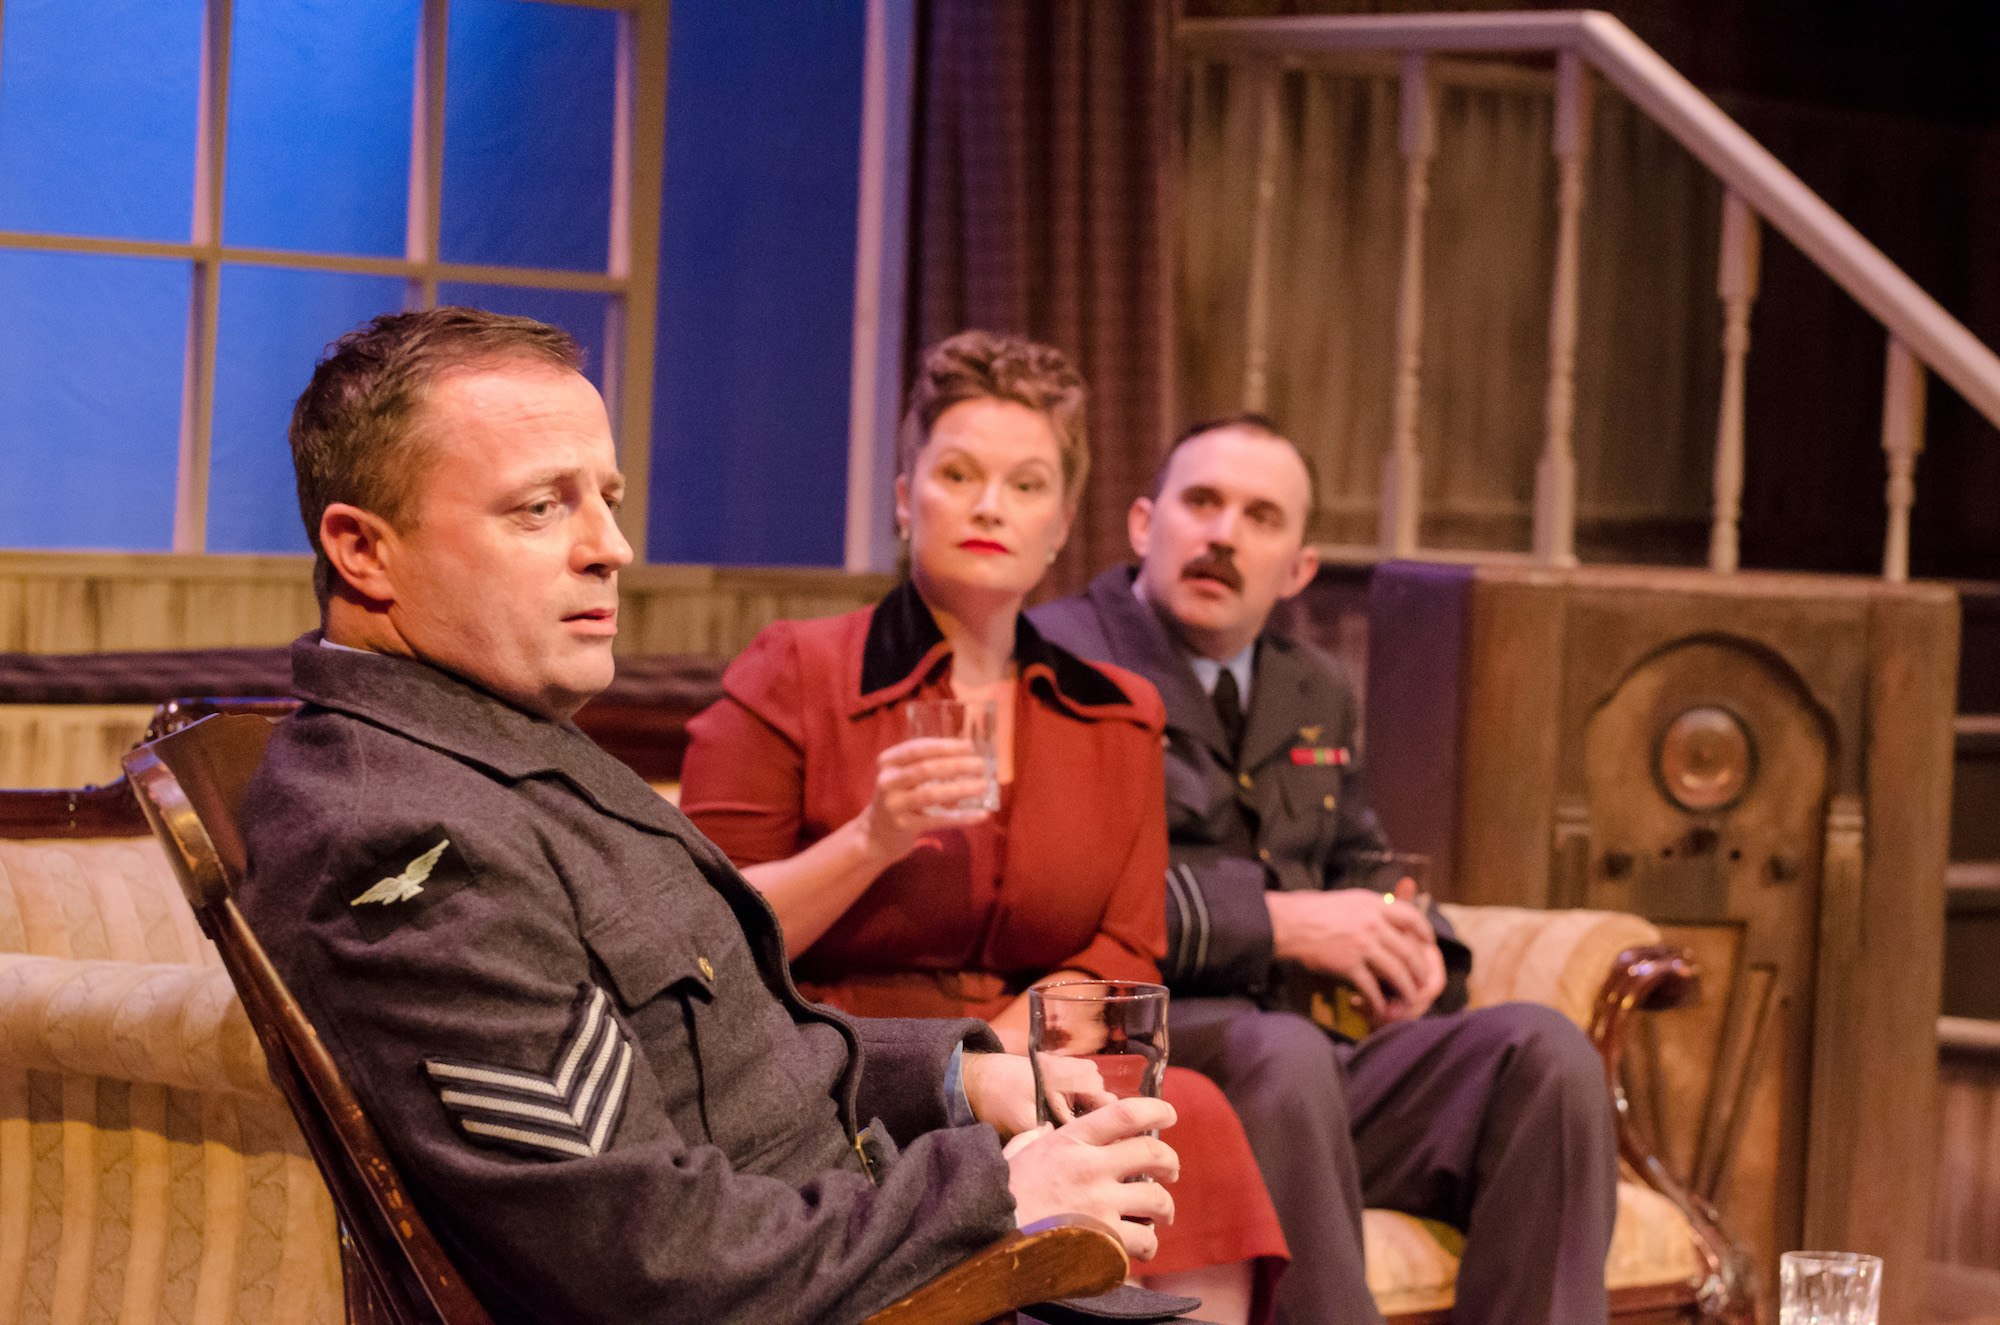 Theatre Review: Flare Path is well executed theatre but distancing in content